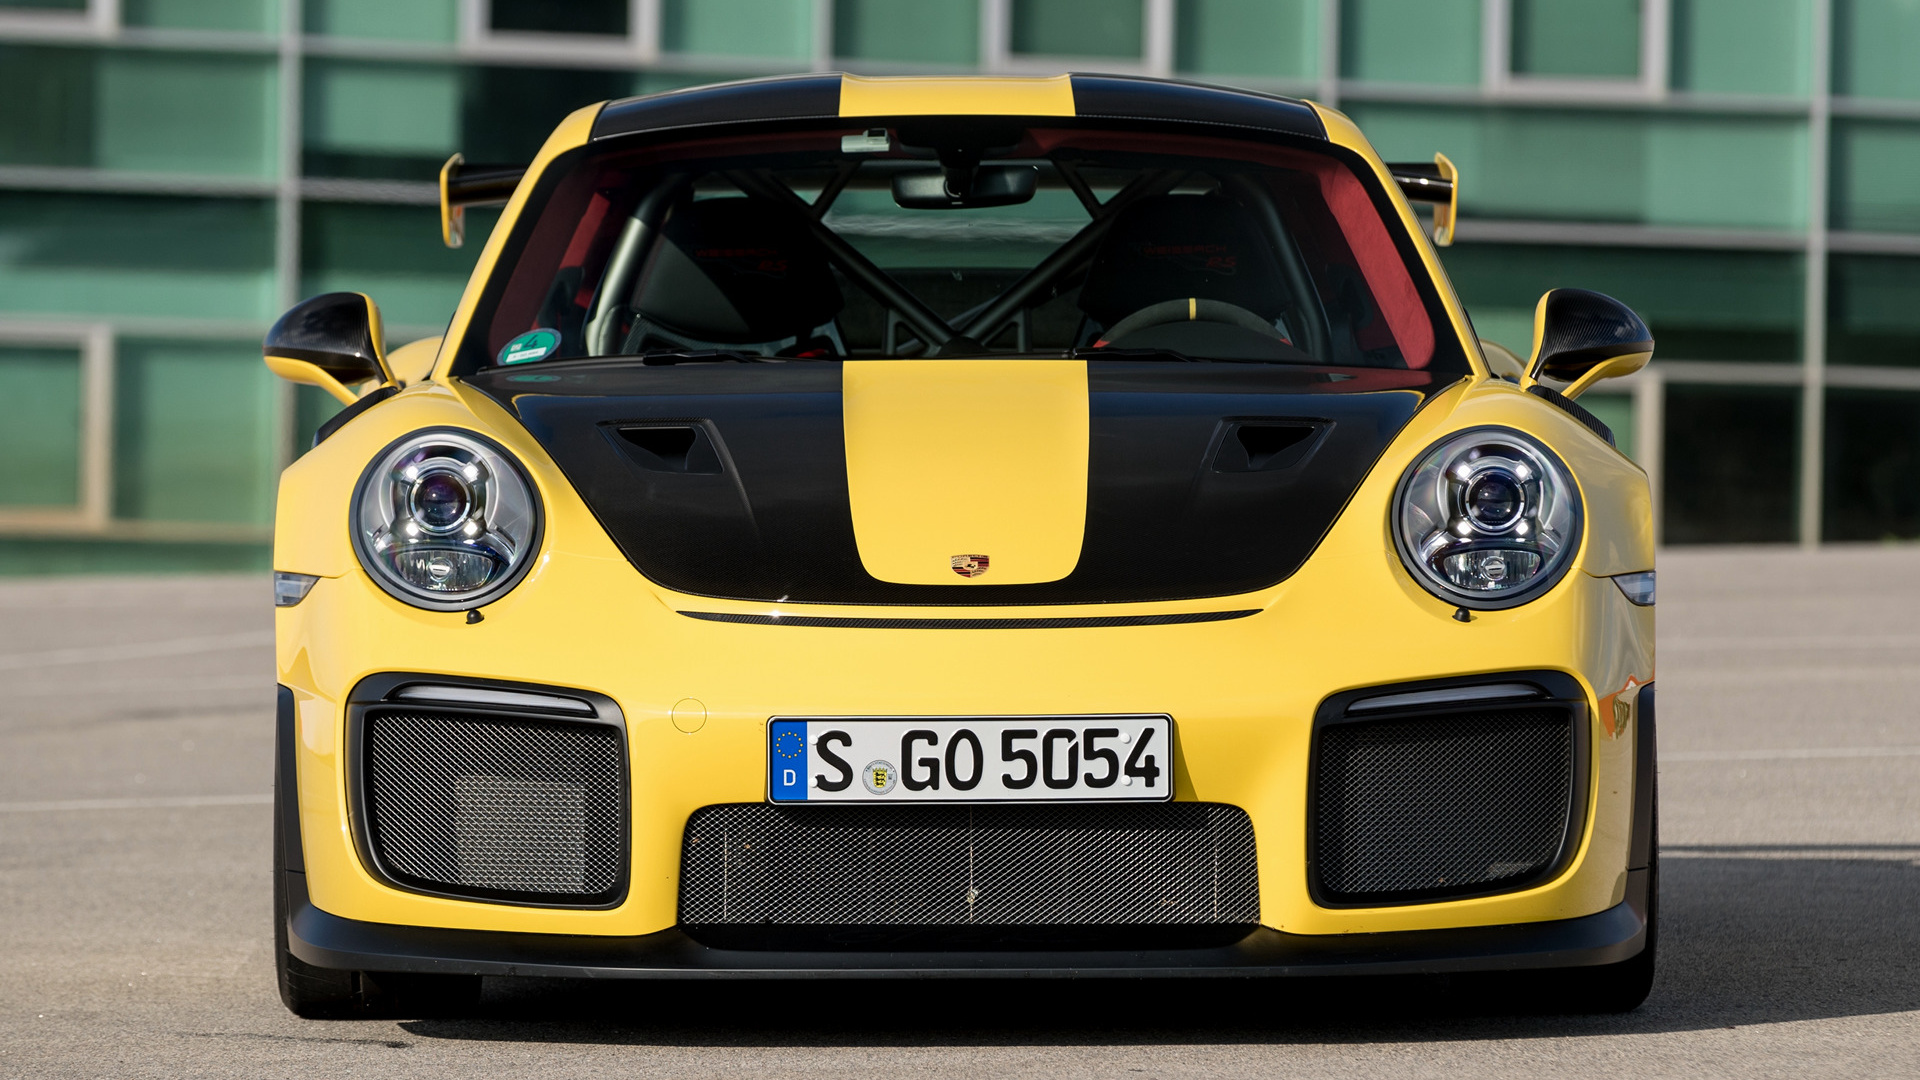 882893 Cozy Porsche 911 Gt2 Rs Wallpaper Cars Trend